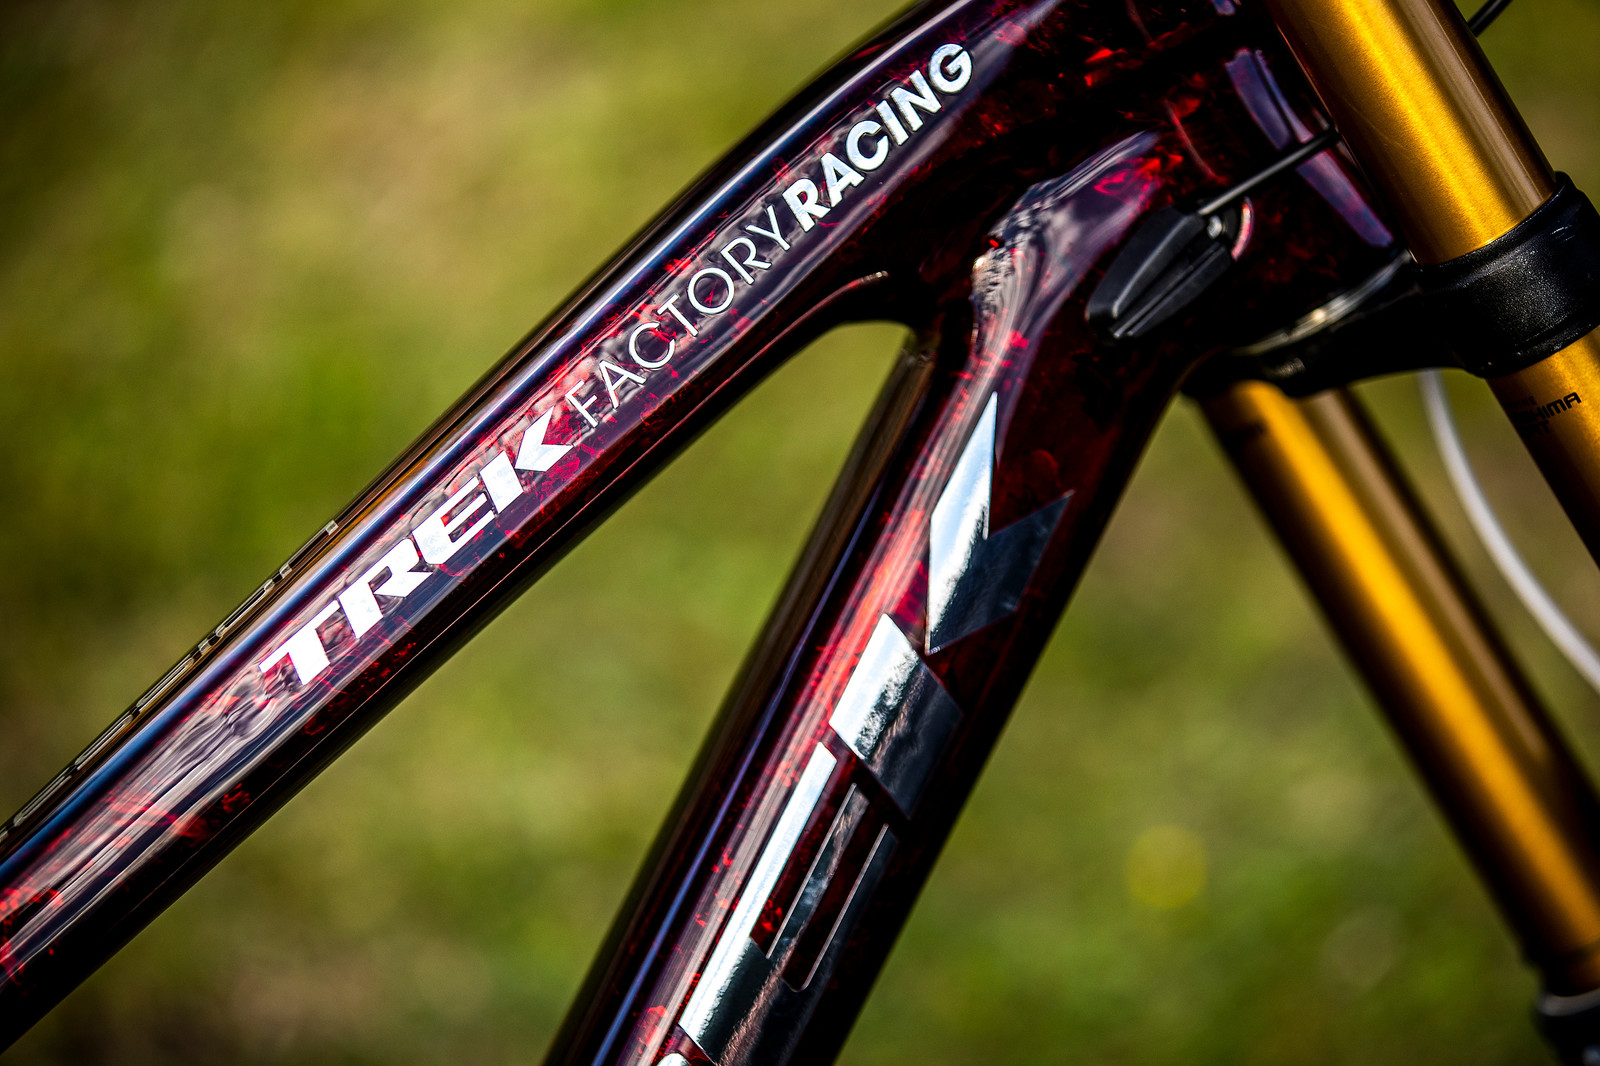 Shiny - WORLD CHAMPS BIKE - Kade Edwards' Trek Session - Mountain Biking Pictures - Vital MTB